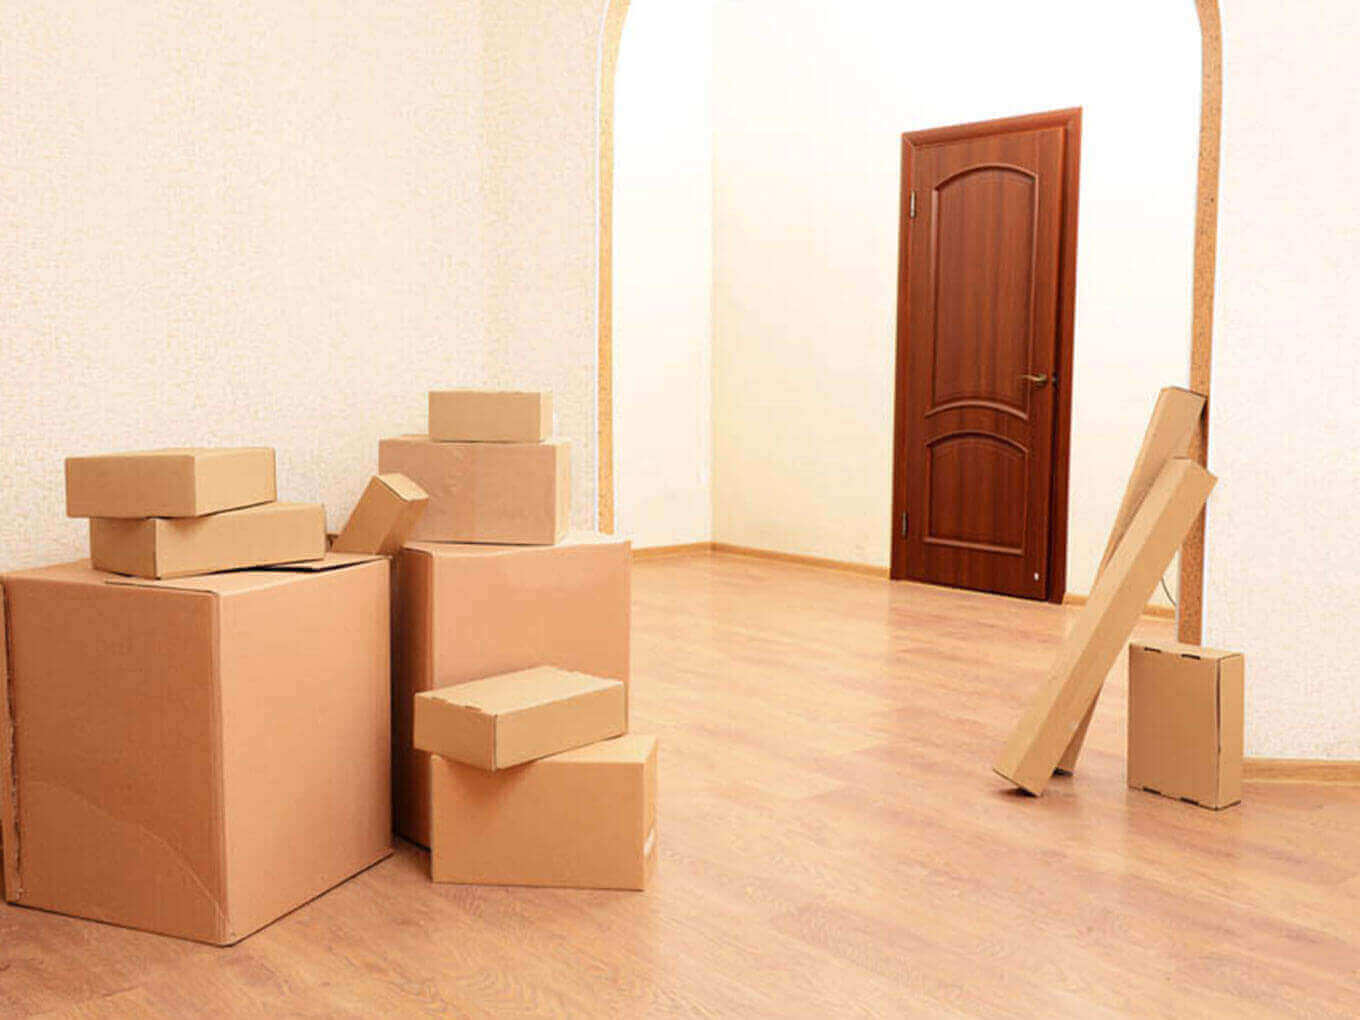 Packing Supplies: 10 Essentials for a Stress-Free Move